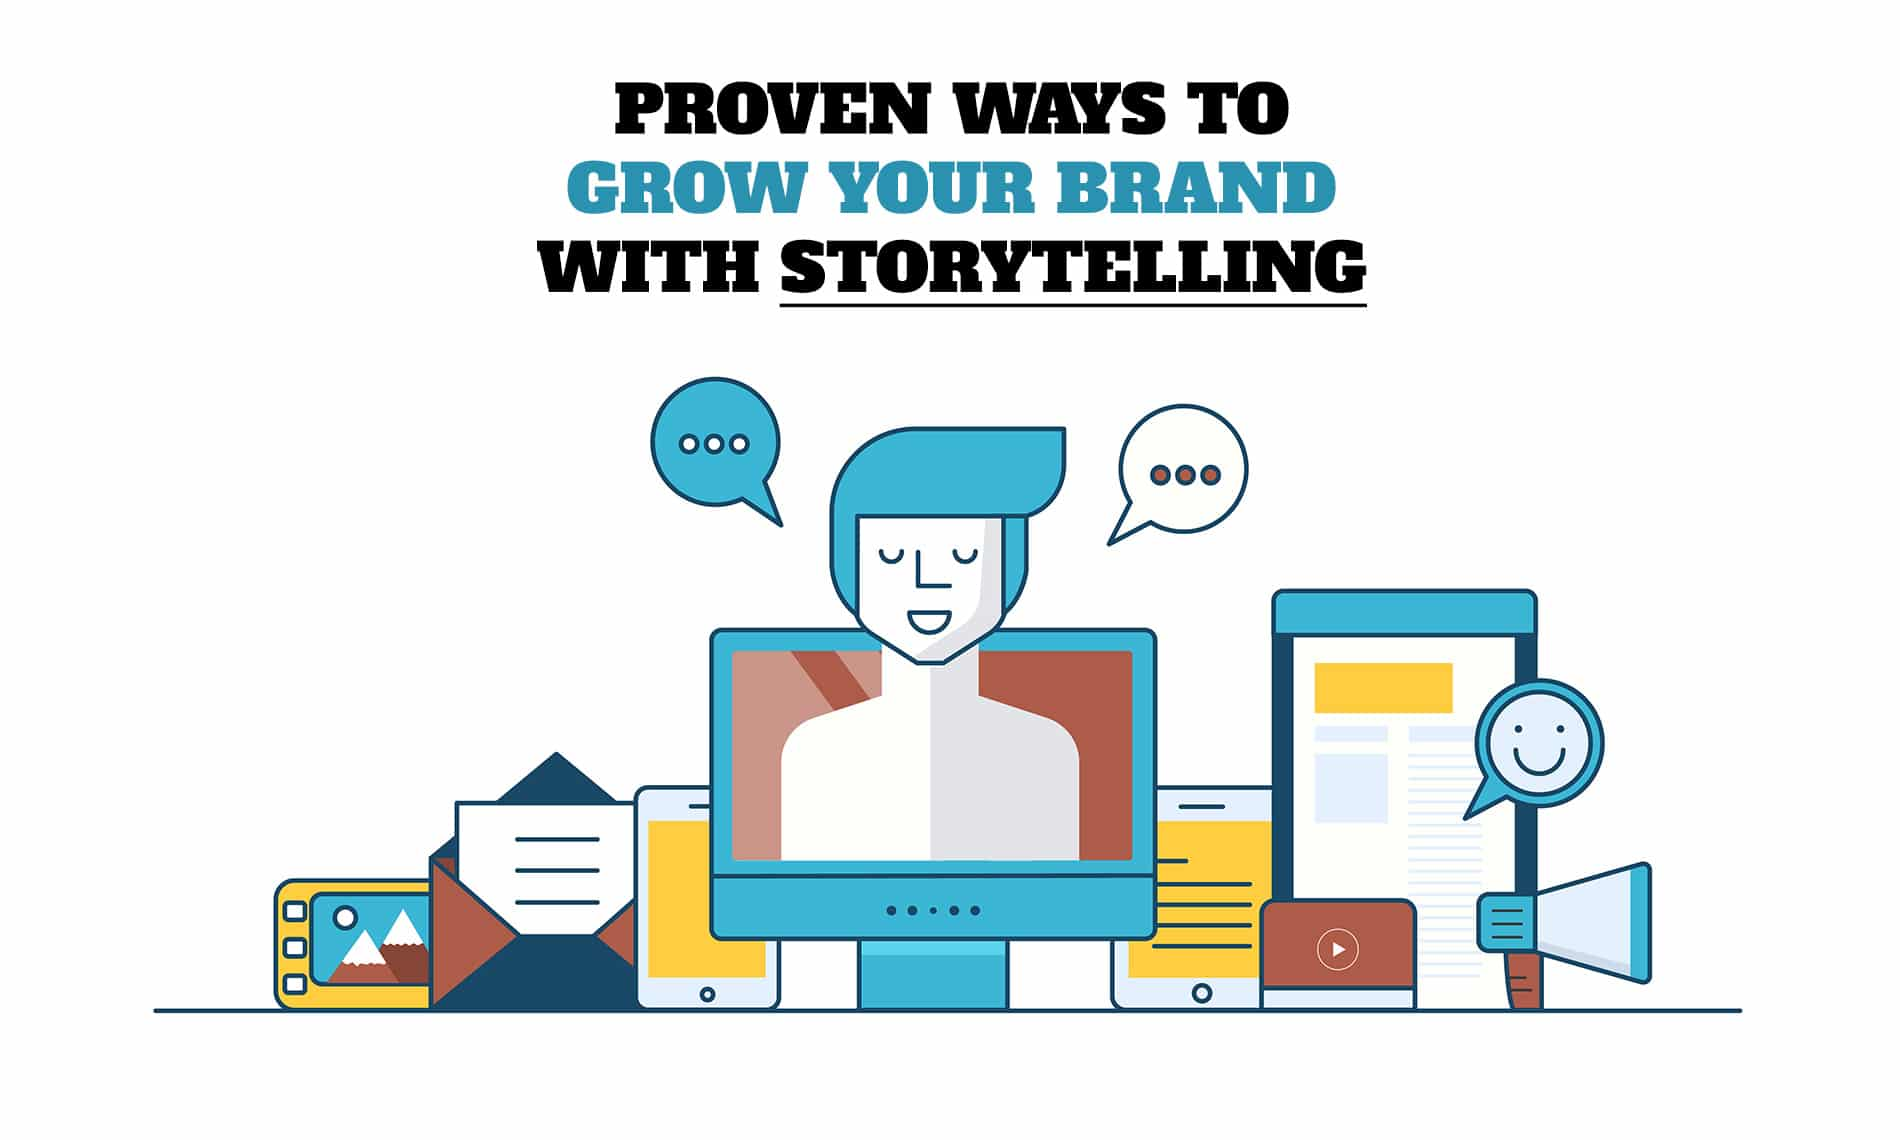 Proven ways to grow your brand with storytelling